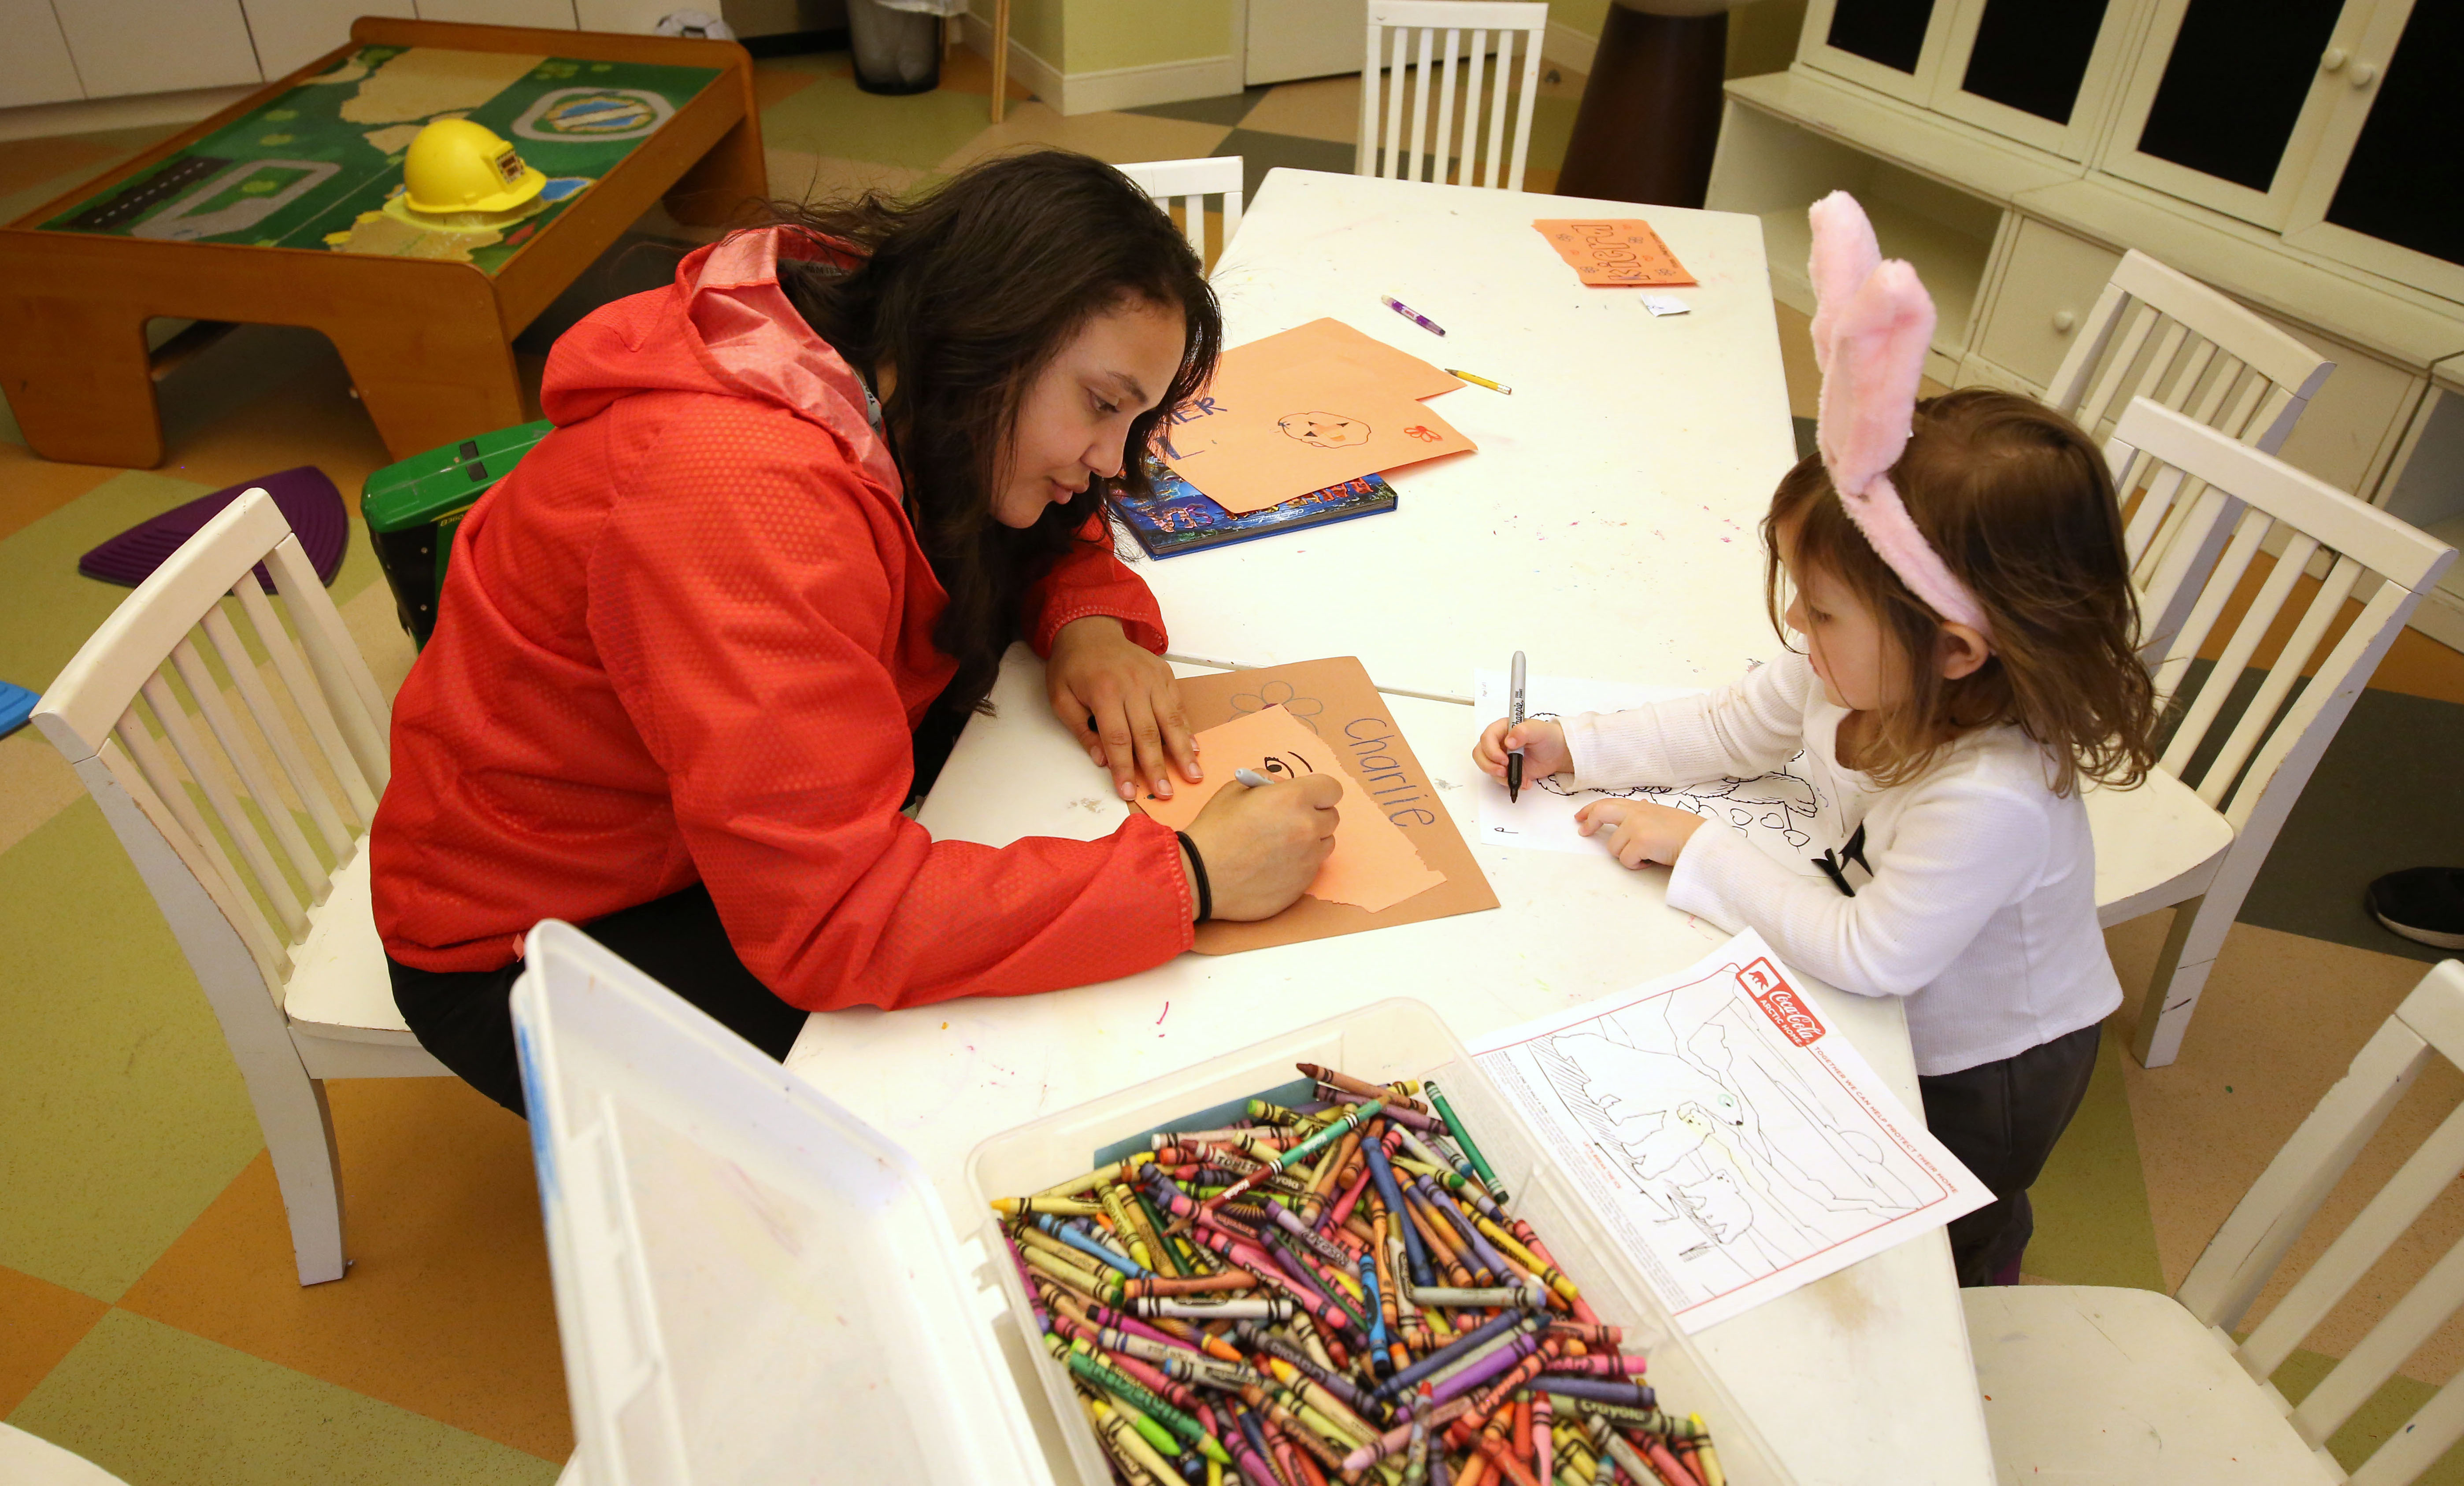 Destiny Slocum colors with a child during her visit to the Ronald McDonald House (Photo: Brian Spurlock. USA TODAY Sports)